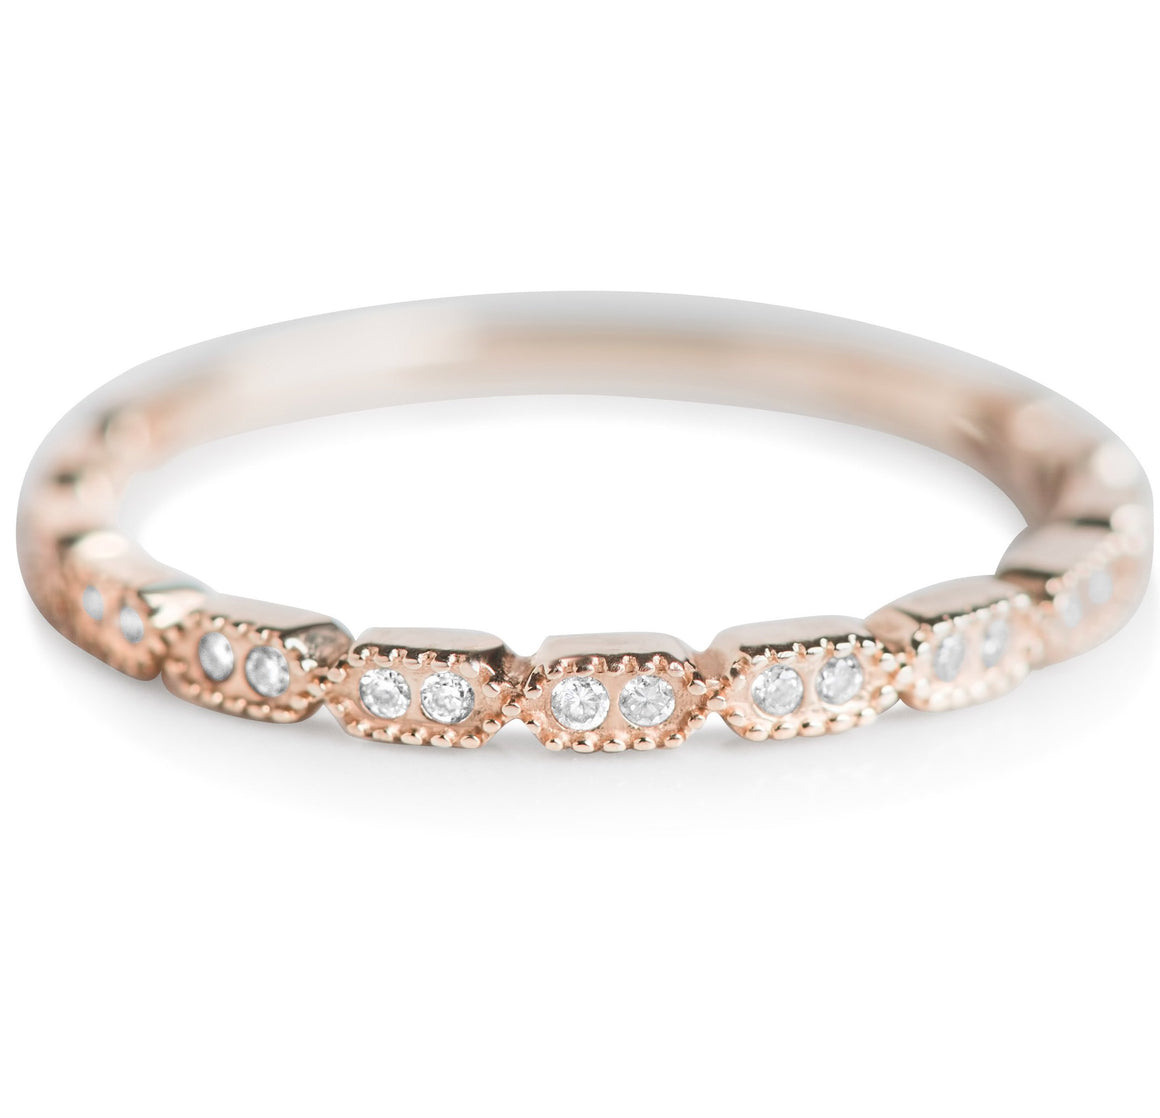 ROSE GOLD DIAMOND ANNIVERSARY BAND WITH MILGRAIN DETAILS